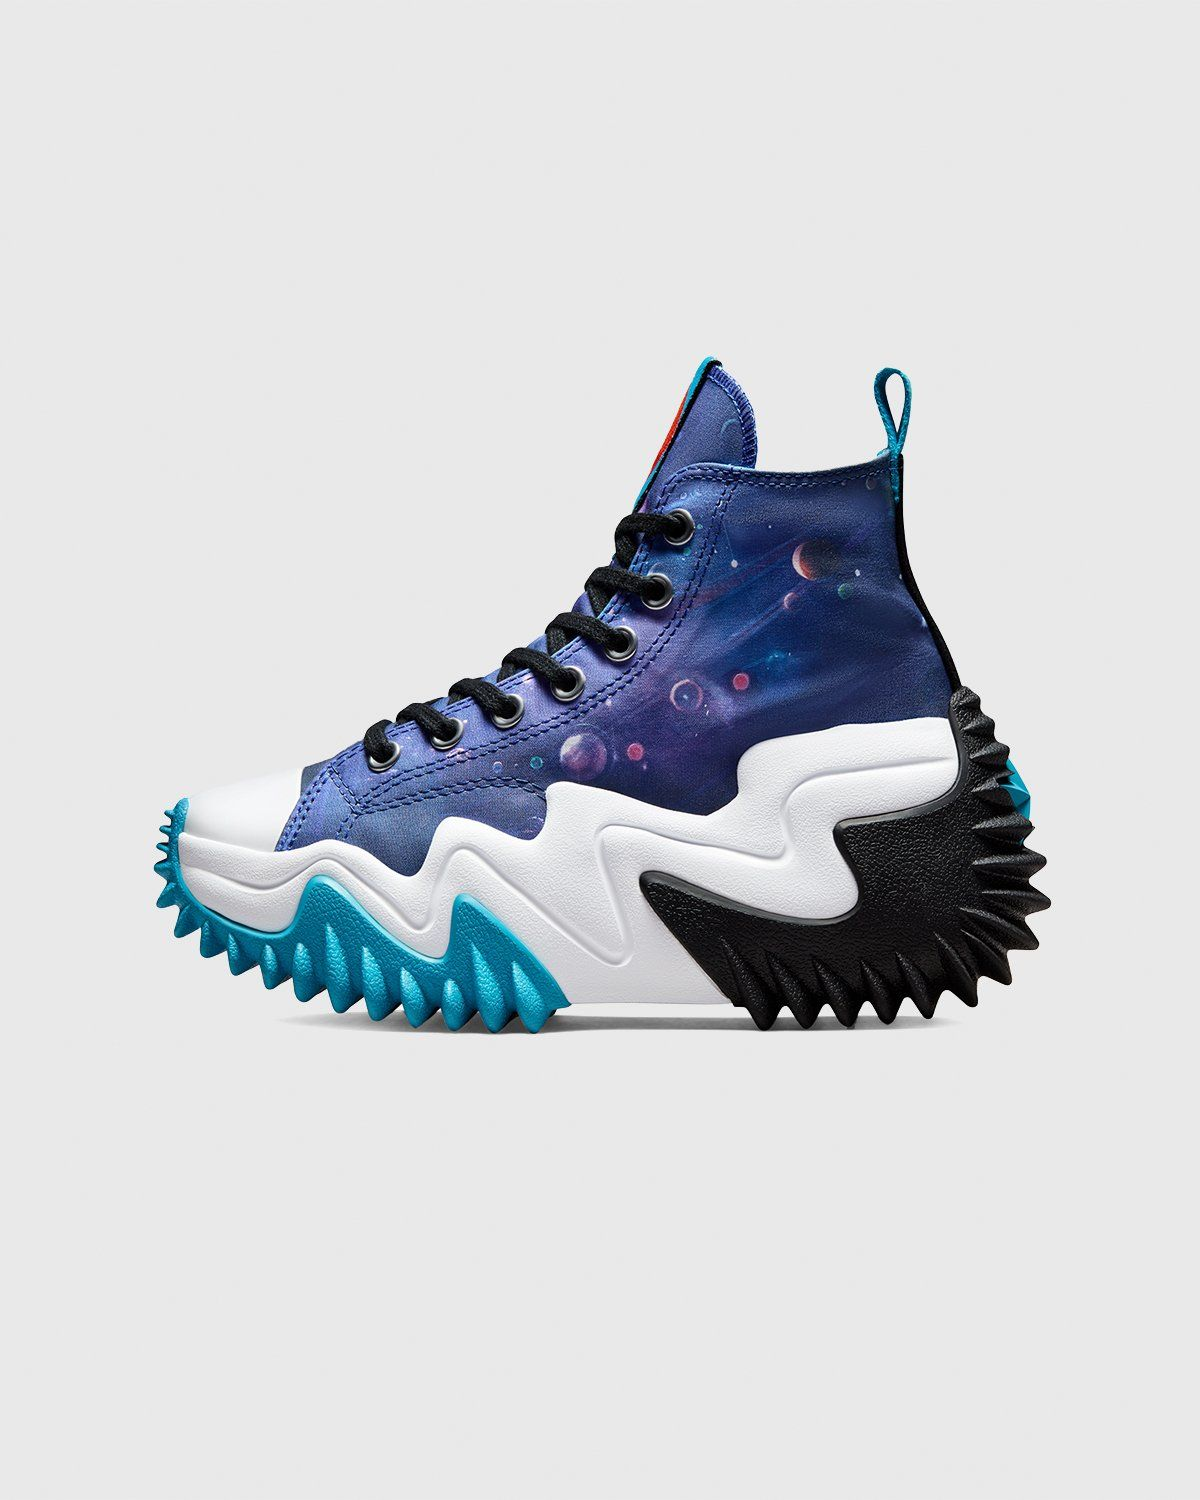 Converse x Space Jam: A New Legacy – Run Star Motion Multi - Image 5